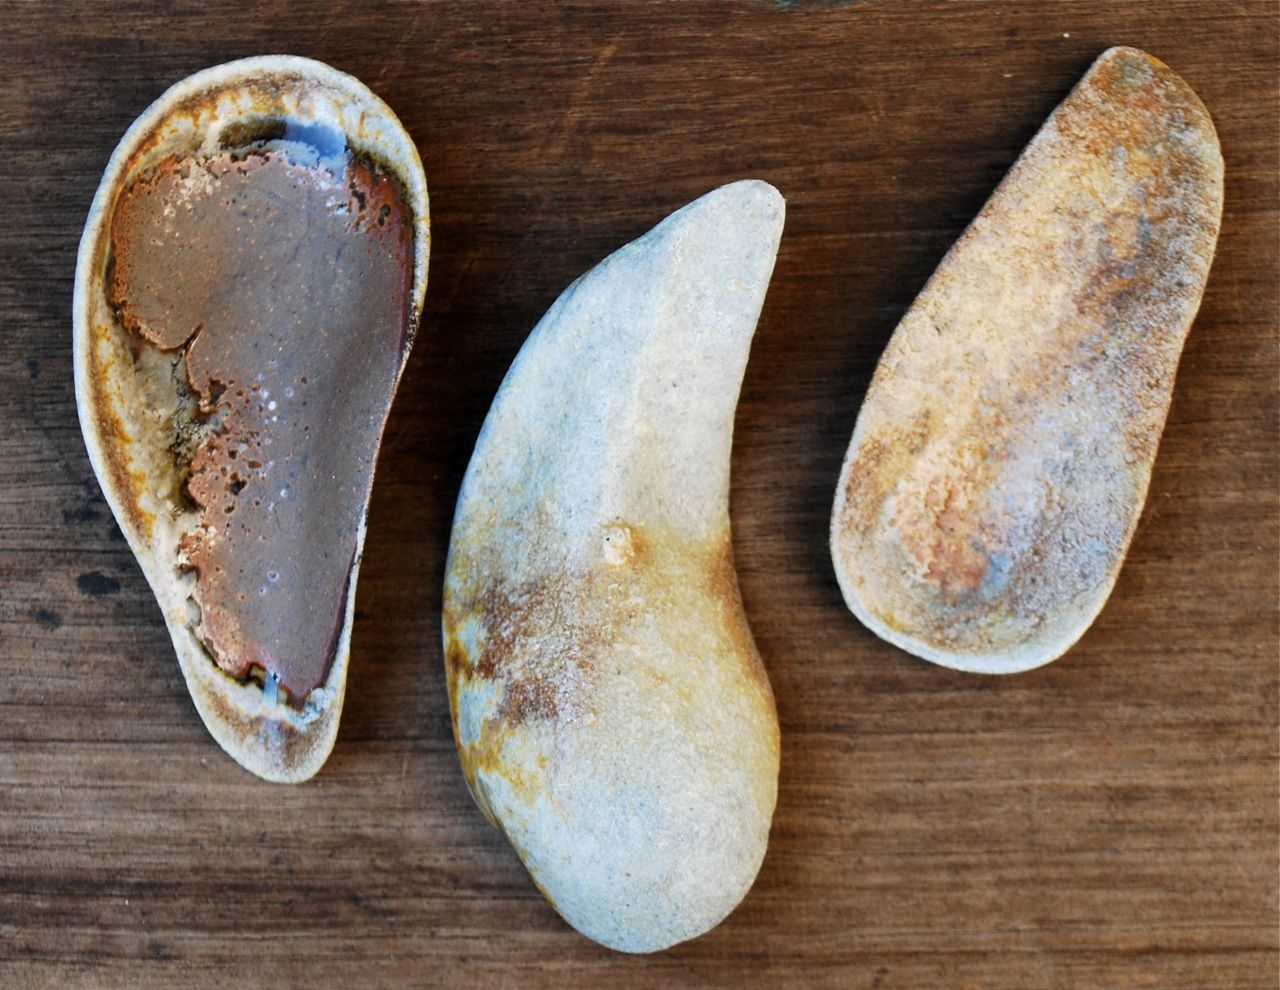 Woodfire Spoons by Vicki Grima, 2012